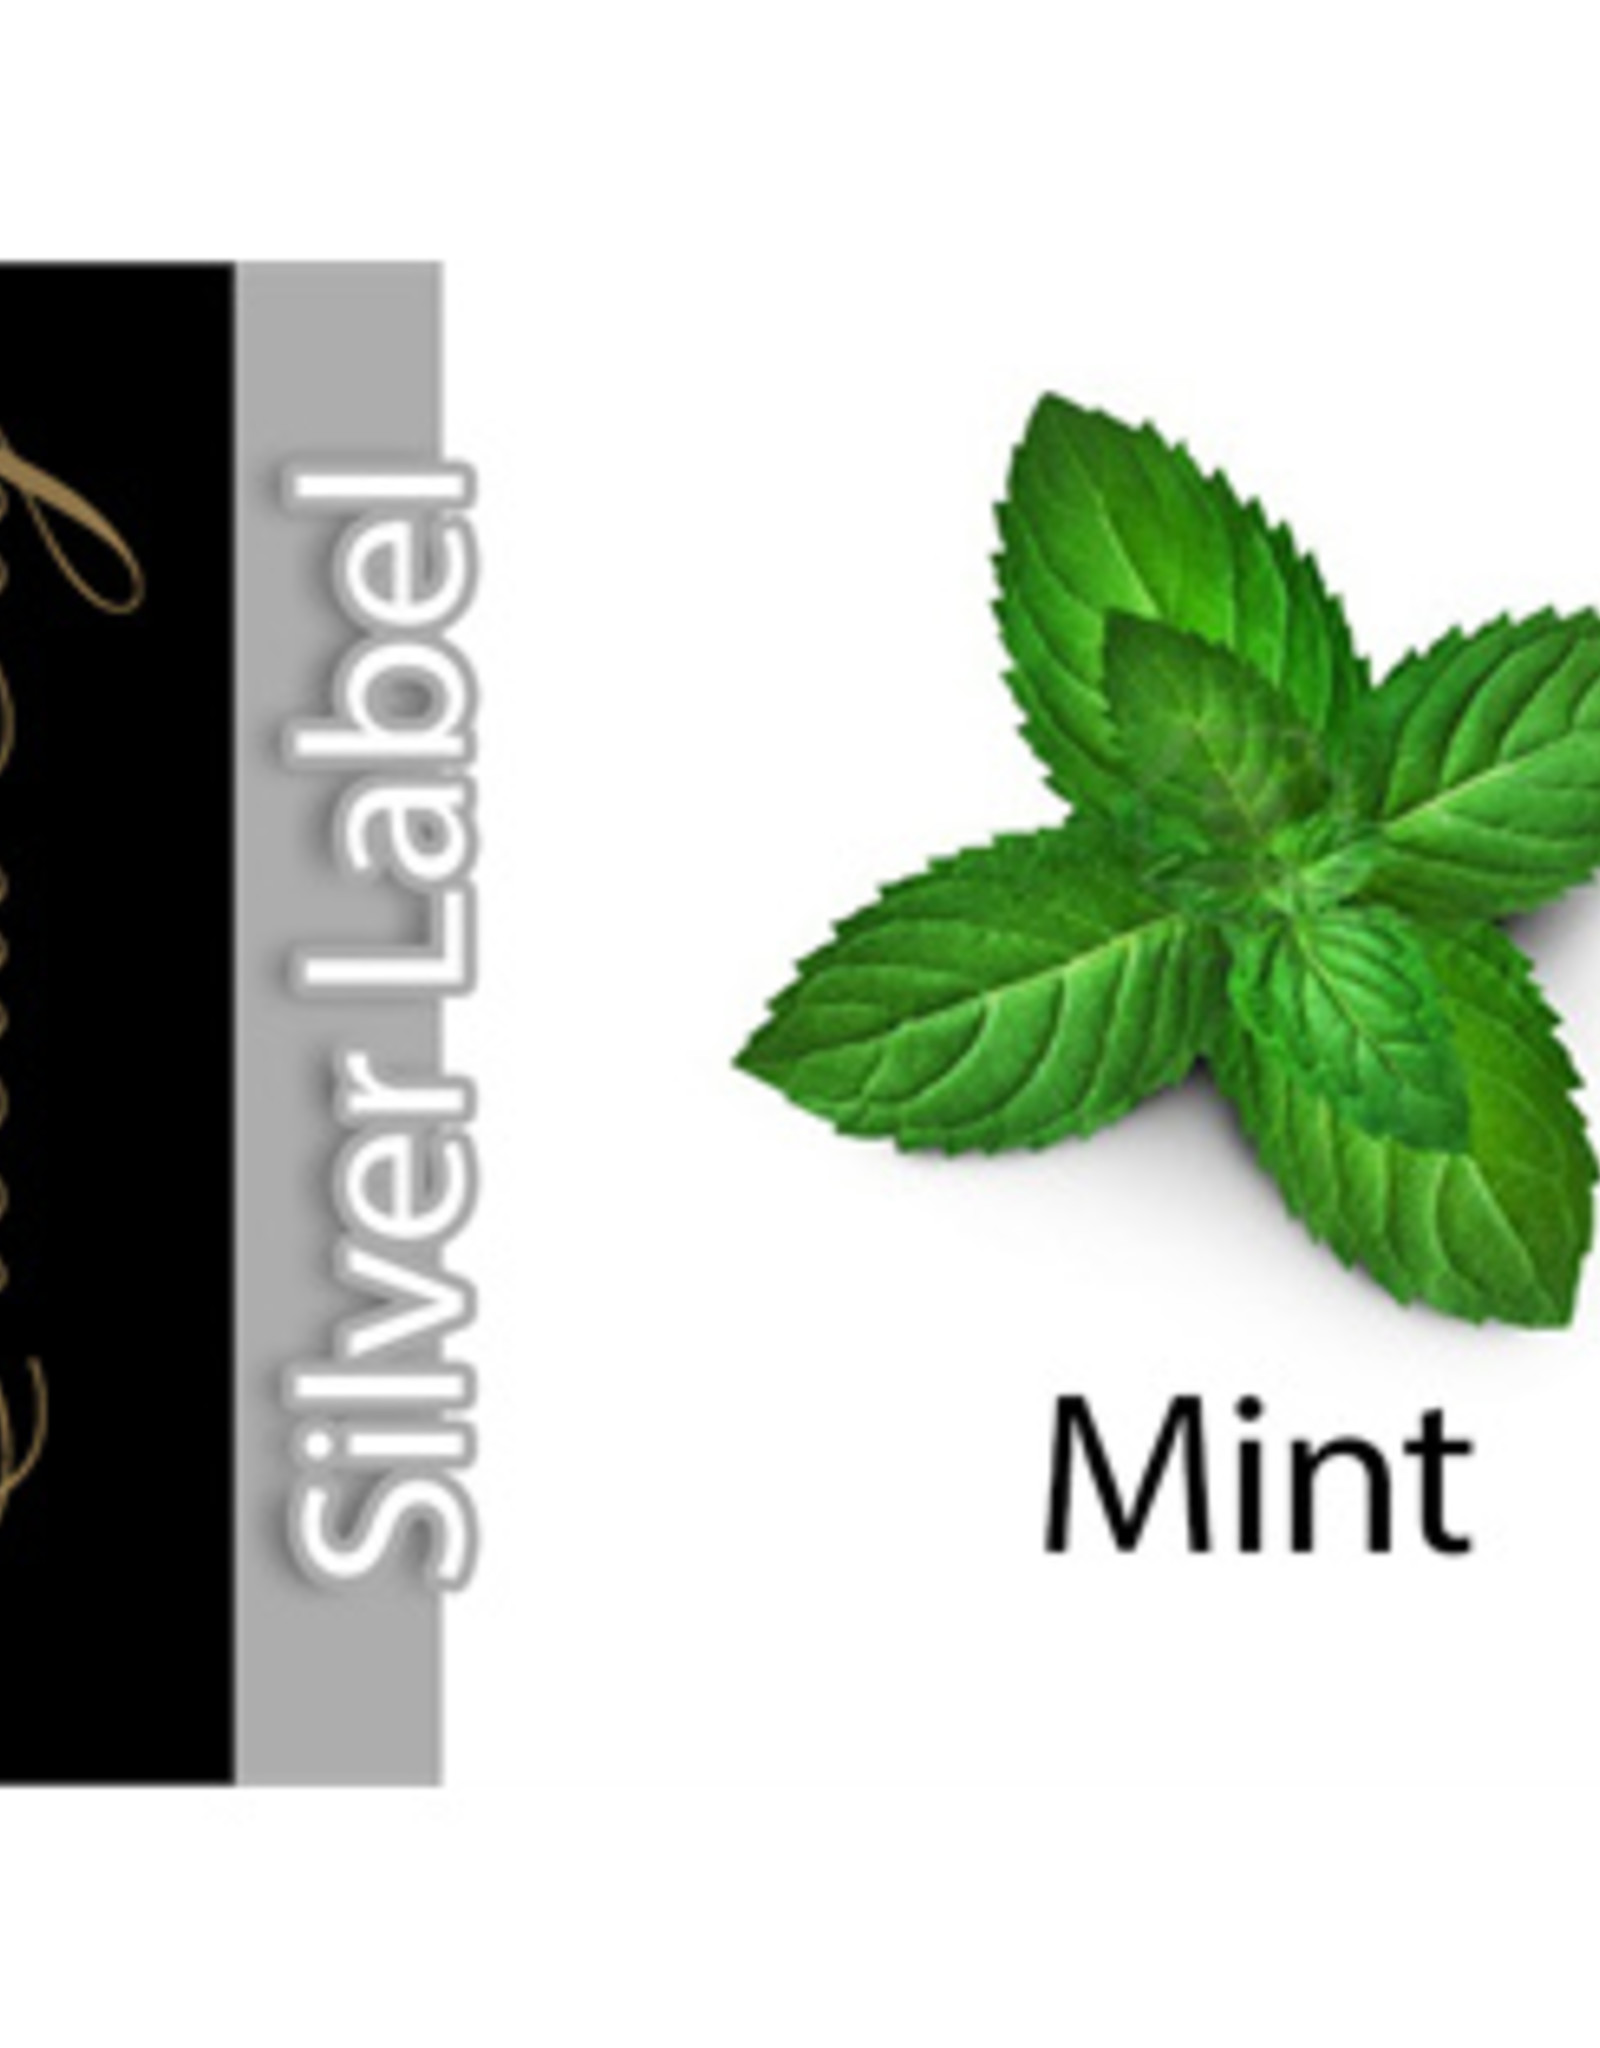 Exclucig Exclucig Silver Label E-liquid Mint 0 mg Nicotine